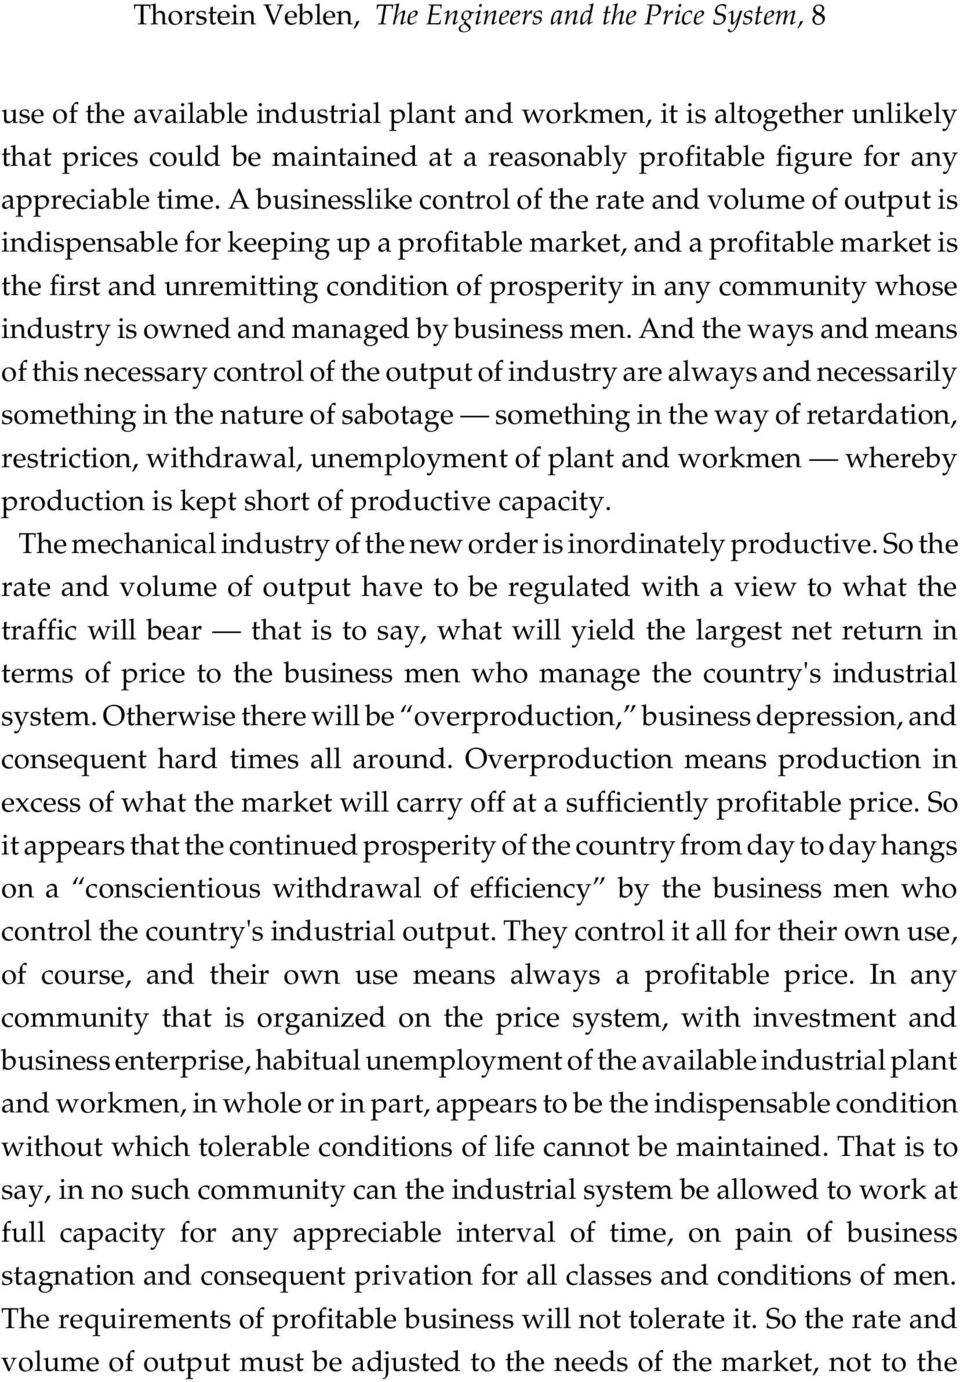 A businesslike control of the rate and volume of output is indispensable for keeping up a profitable market, and a profitable market is the first and unremitting condition of prosperity in any